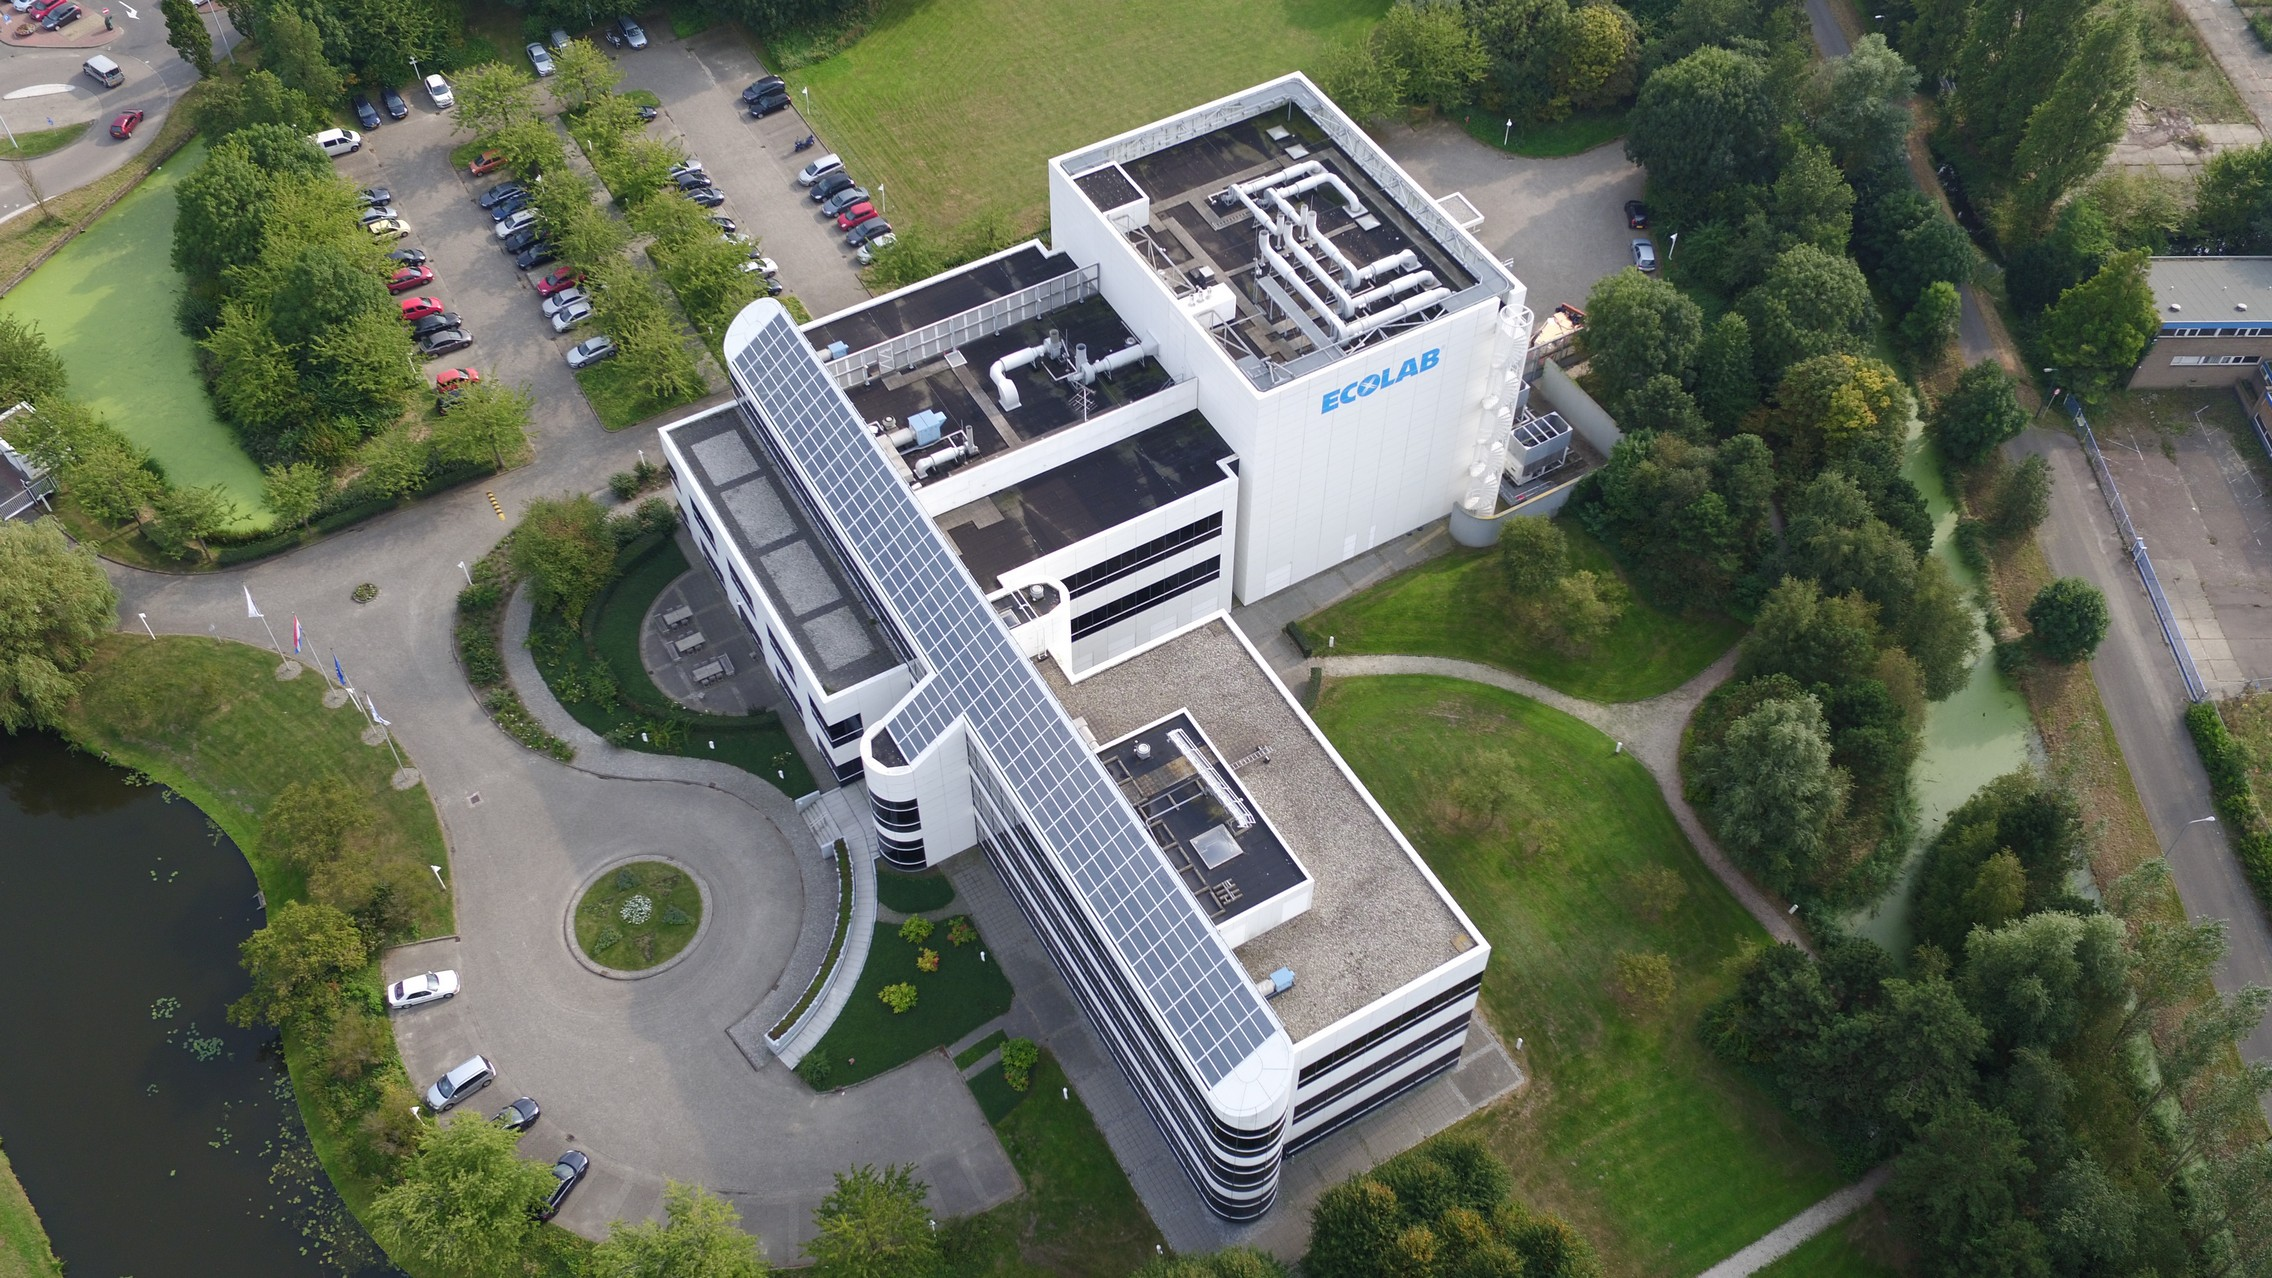 Ecolab Oegstgeest